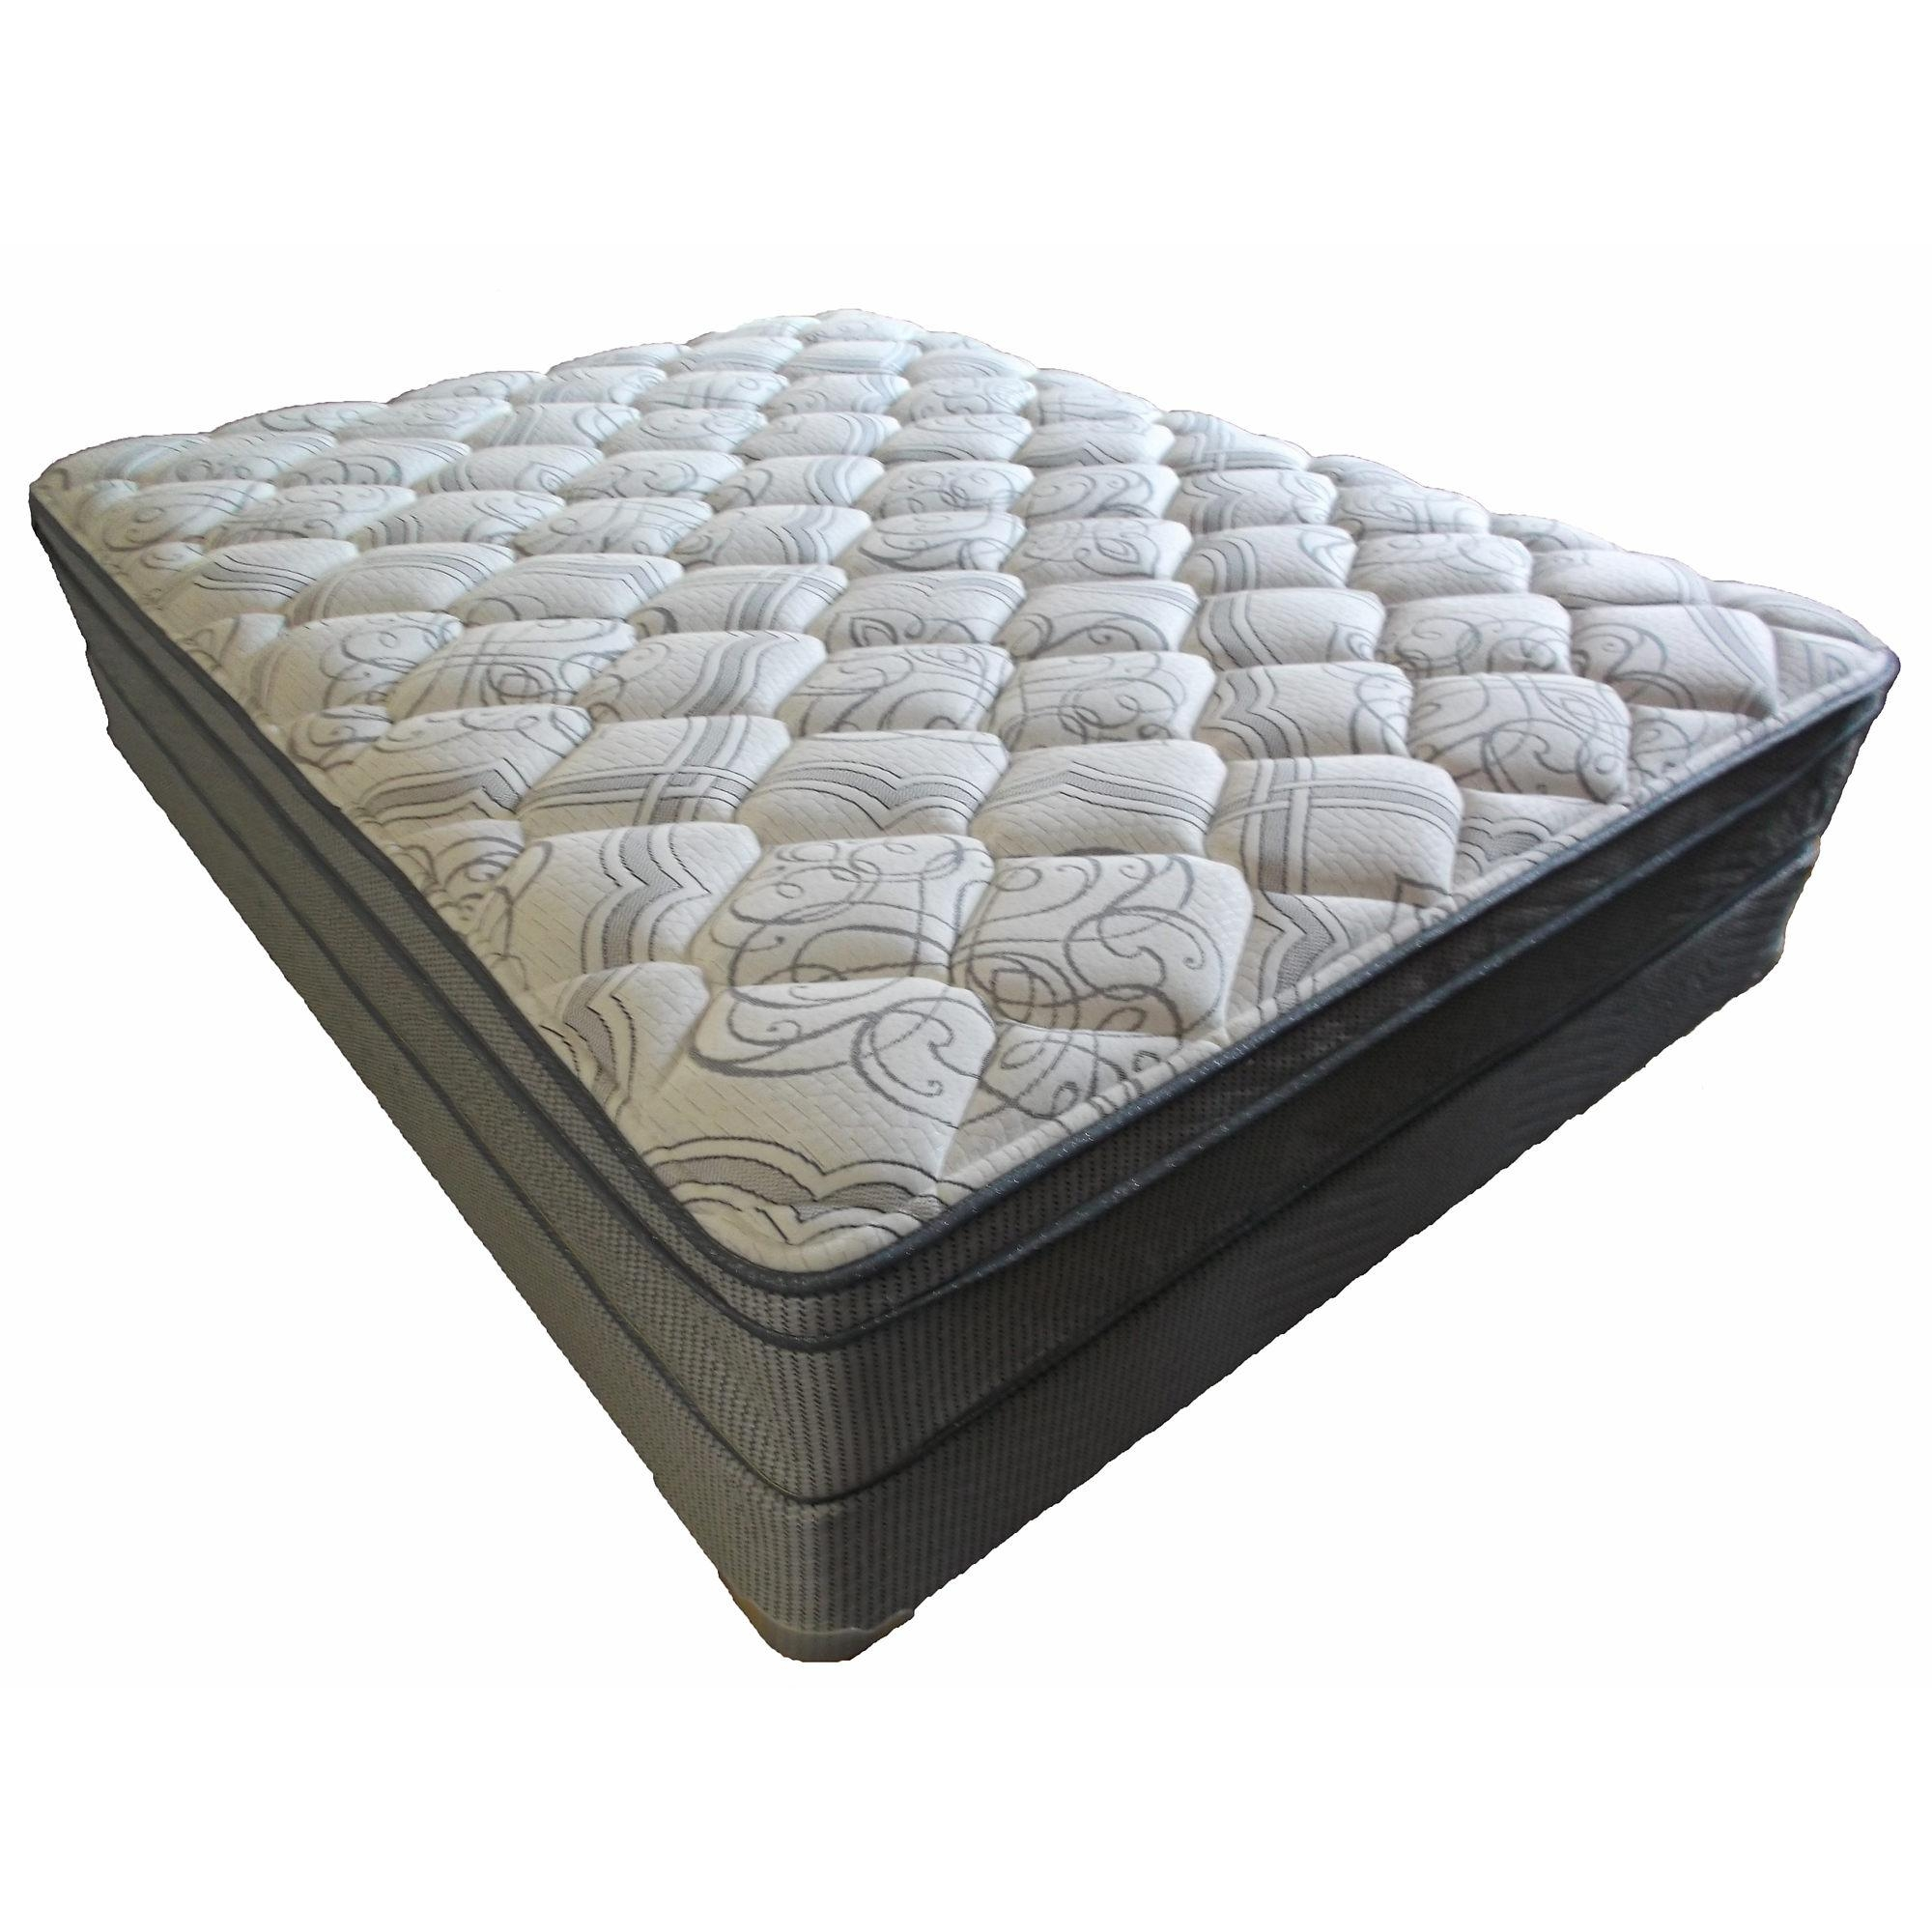 Cheap Queen Mattress Sets Under 200 | Vertigino Mattress Intended For Queen Mattress Sets (Photo 3 of 20)